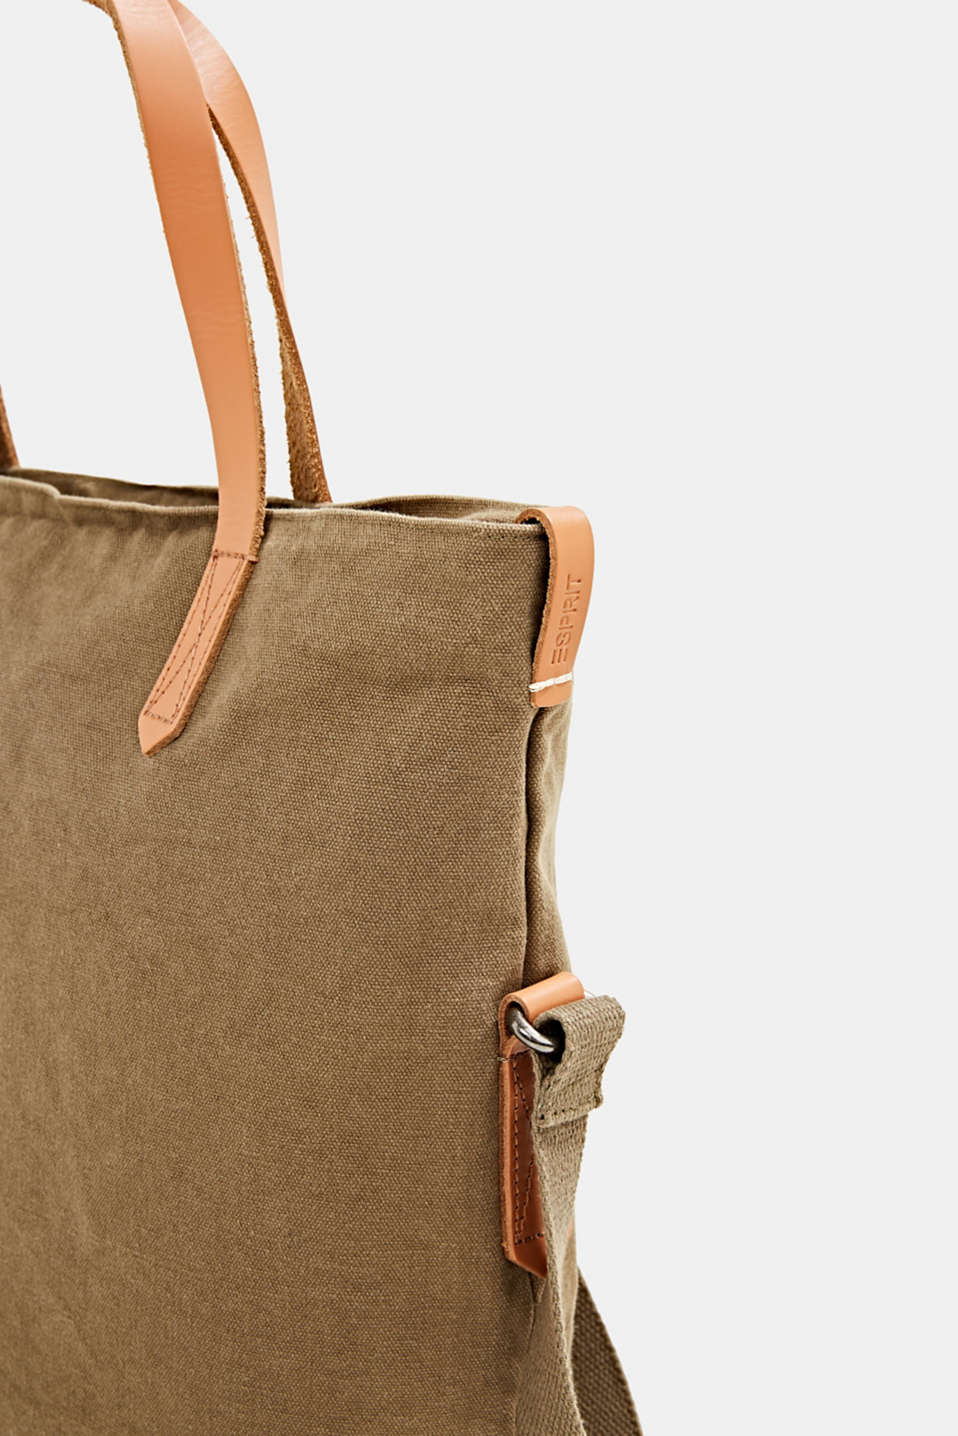 Adjustable canvas tote with leather details, LIGHT KHAKI, detail image number 3